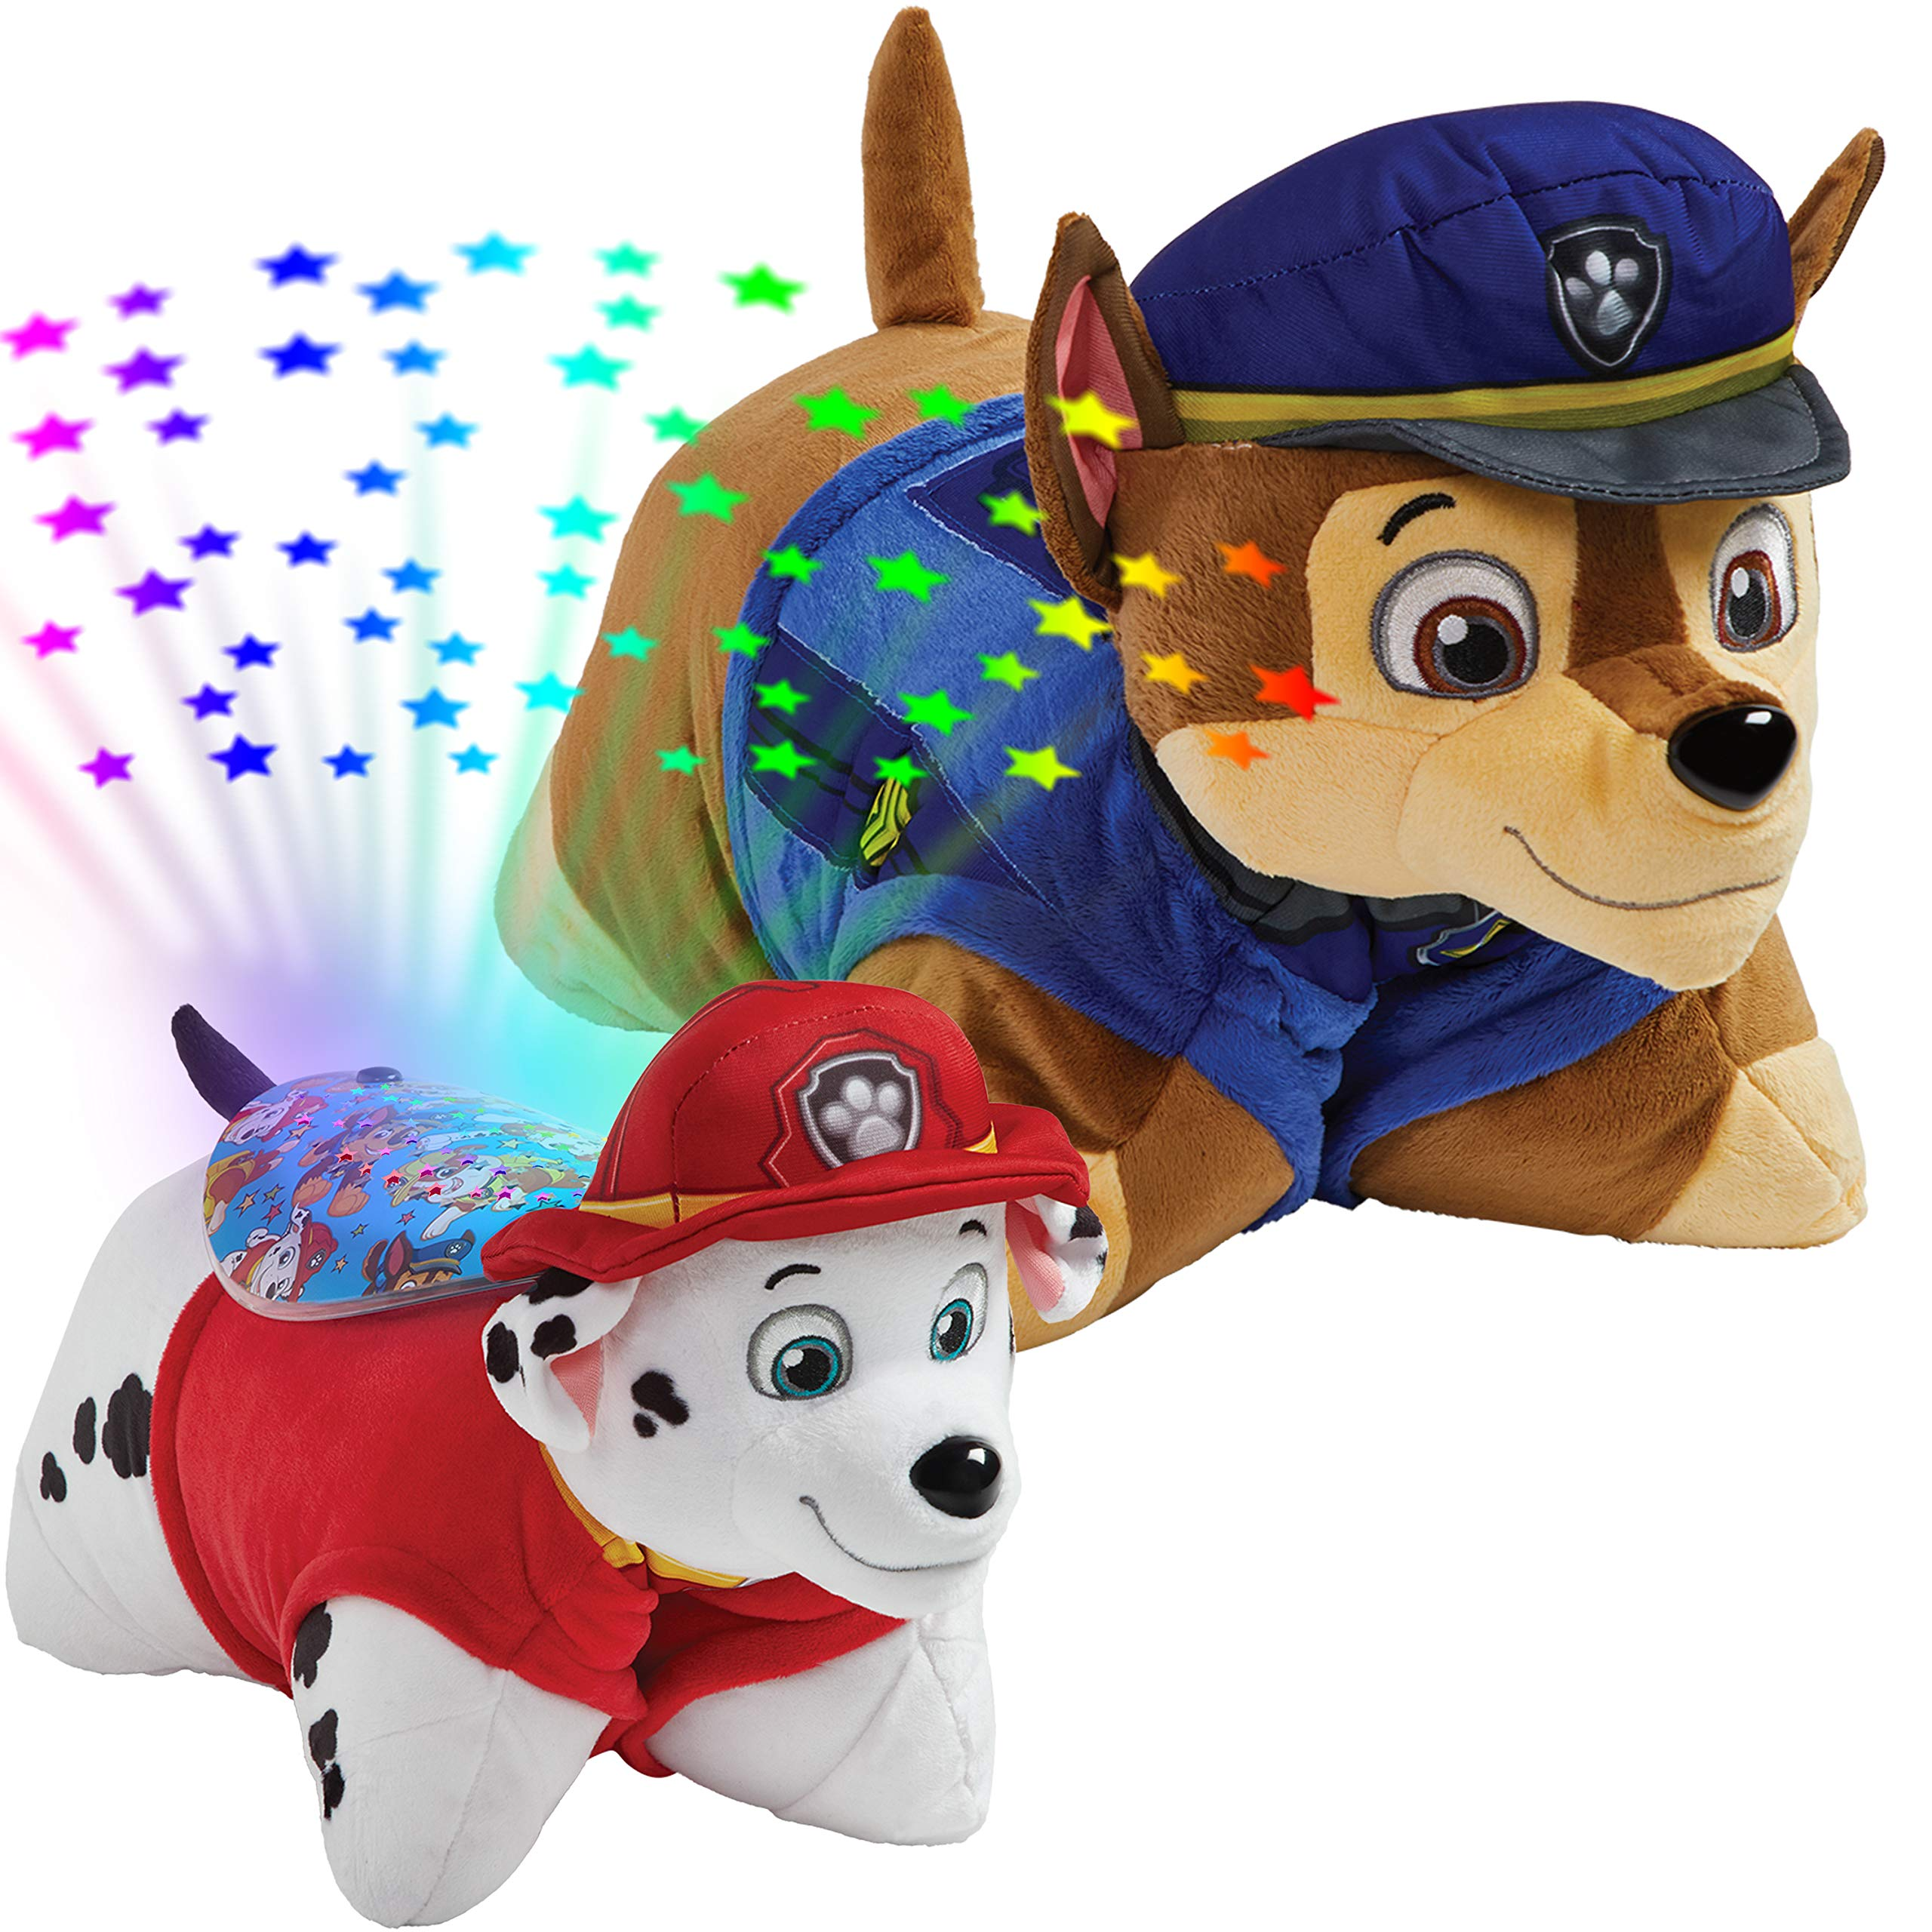 Pillow Pets Nickelodeon Paw Patrol, 16'' Chase Marshall Sleeptime Lites, Stuffed Animal Plush Toy & Night Light, Multicolor 061202CM by Pillow Pets